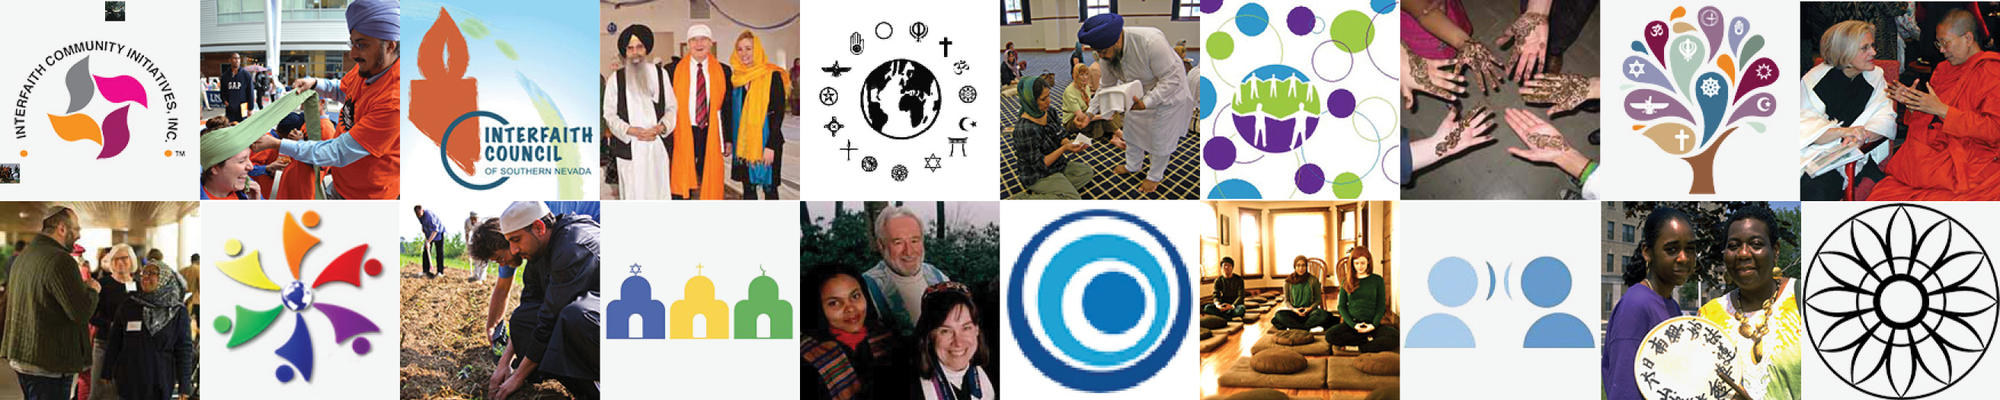 Banner of interfaith images and interfaith org logos